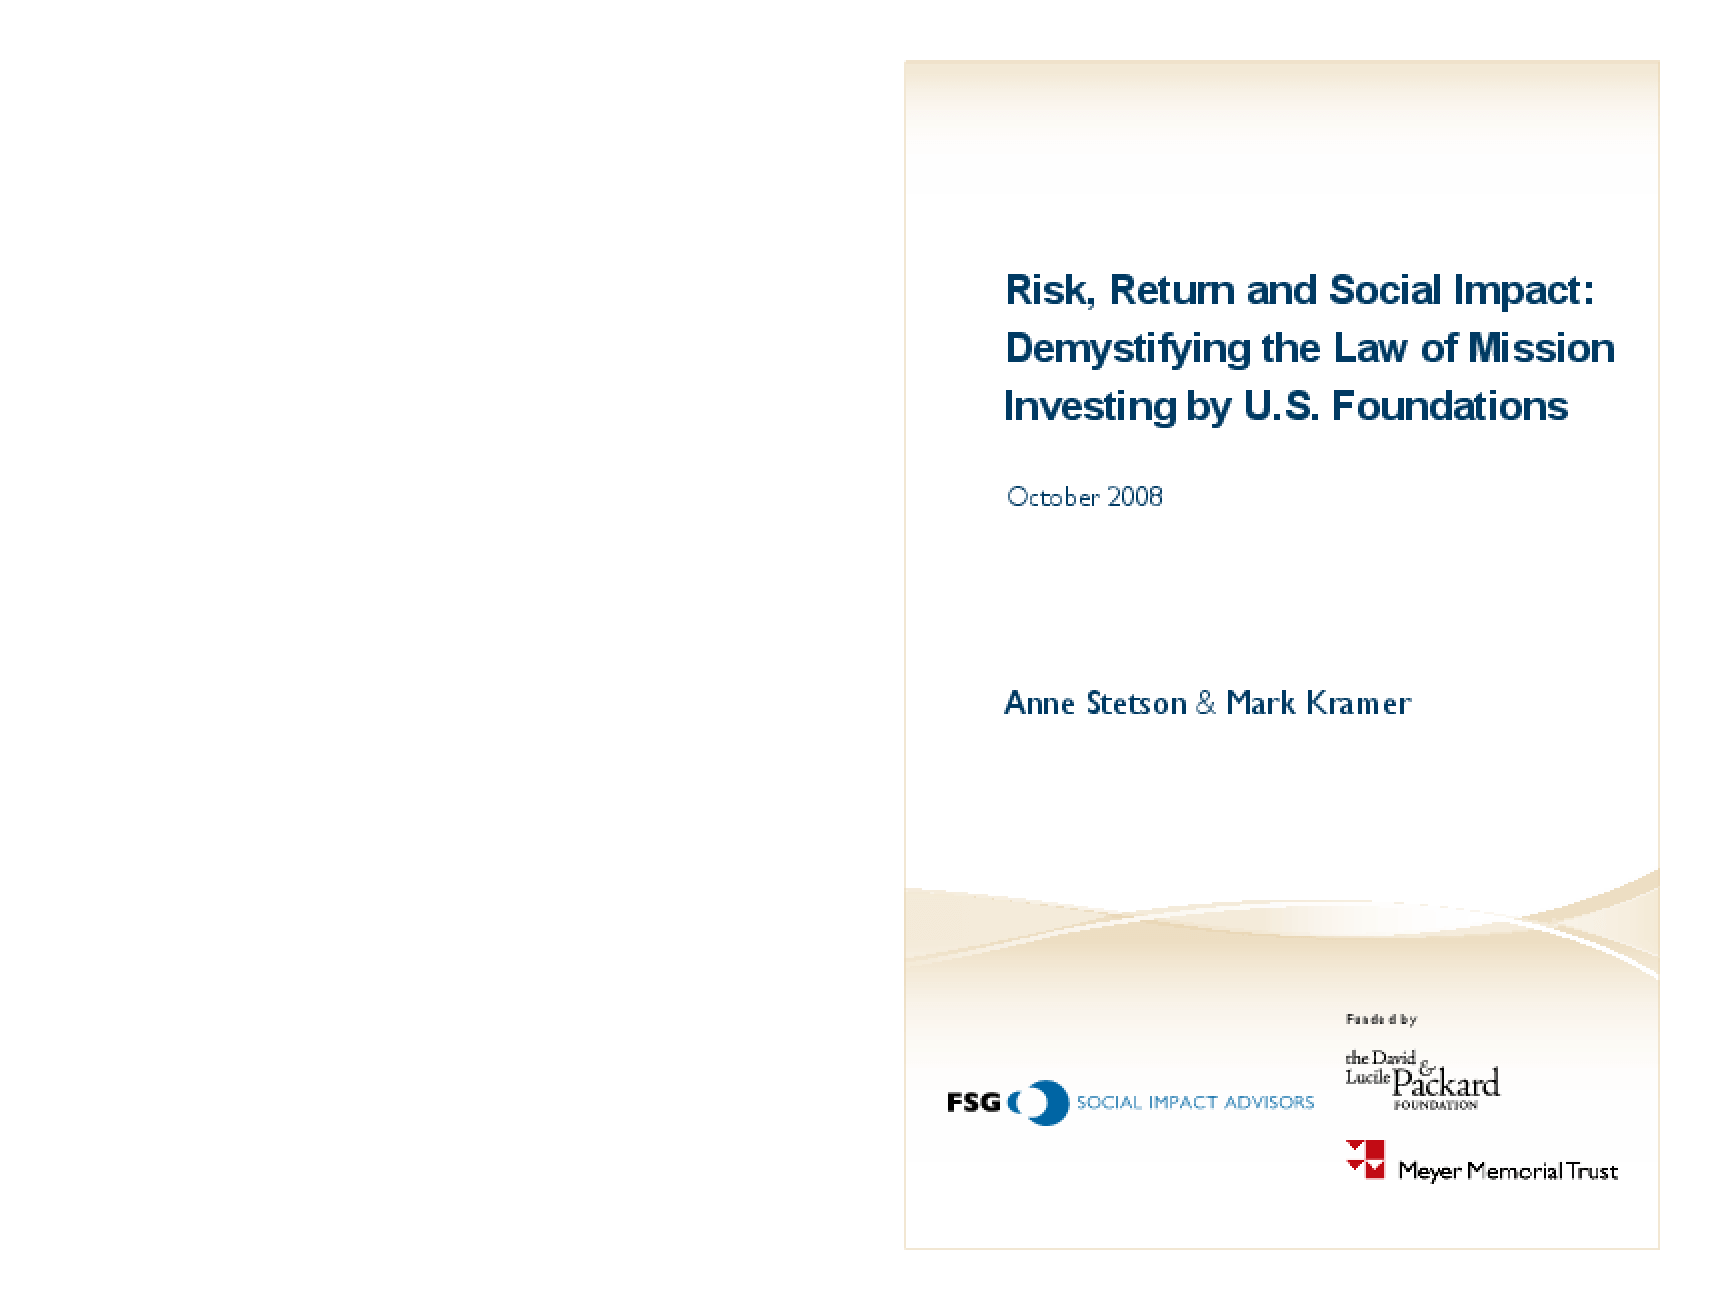 Risk, Return and Social Impact: Demystifying the Law of Mission Investing by U.S. Foundations